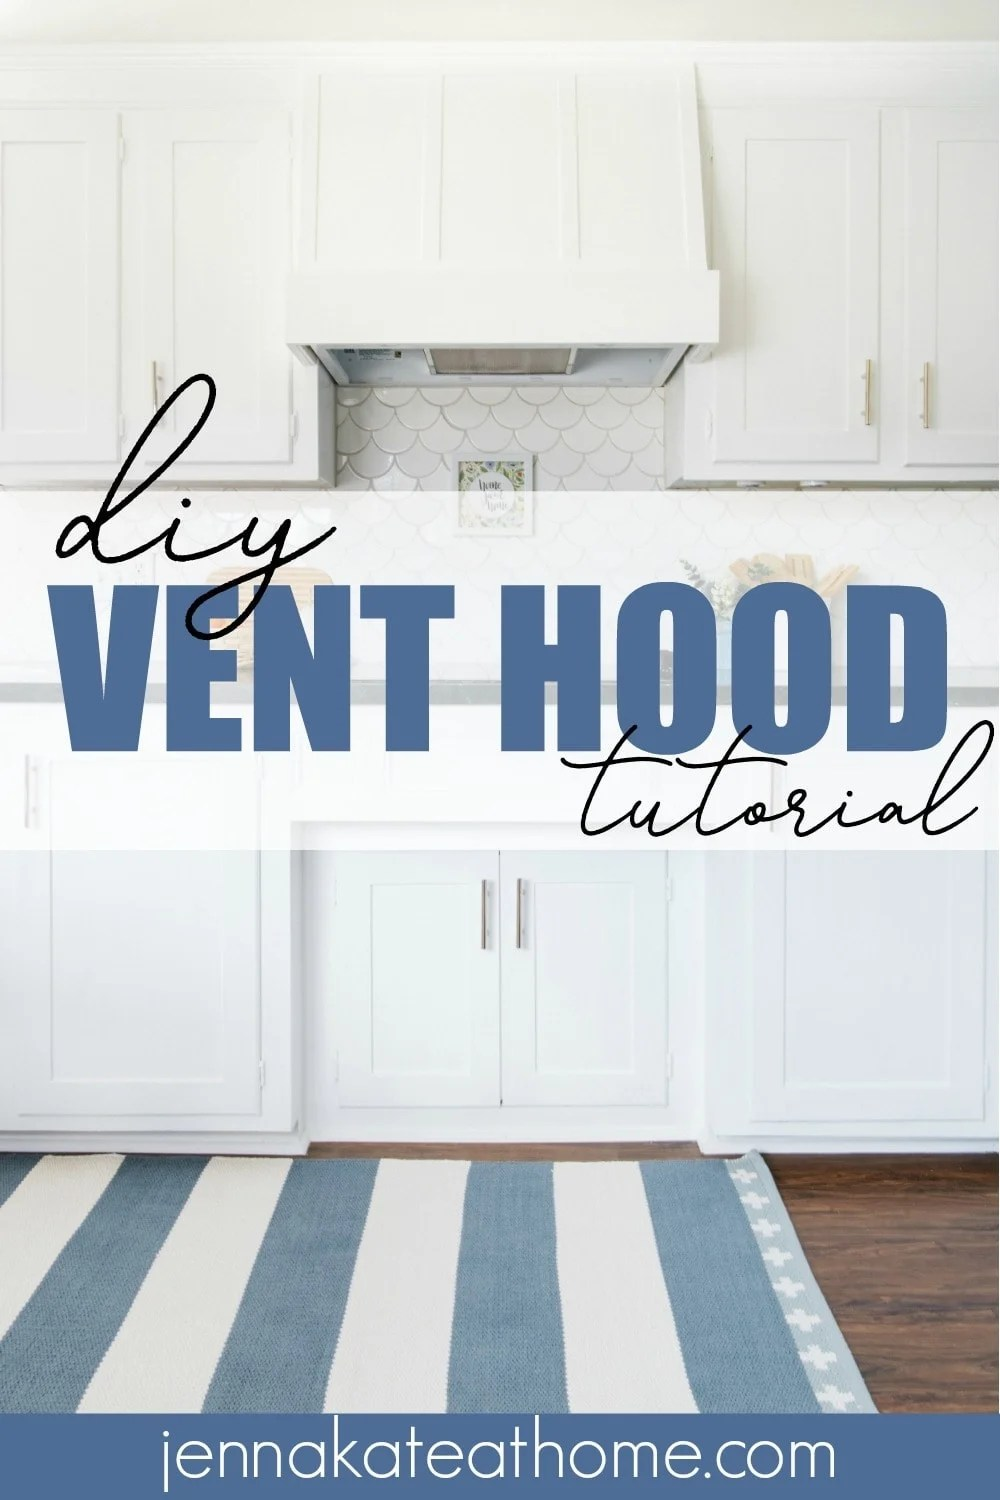 Learn how easy it is to build a DIY wood vent hood cover to match with your existing white cabinets for a custom look at a budget price!